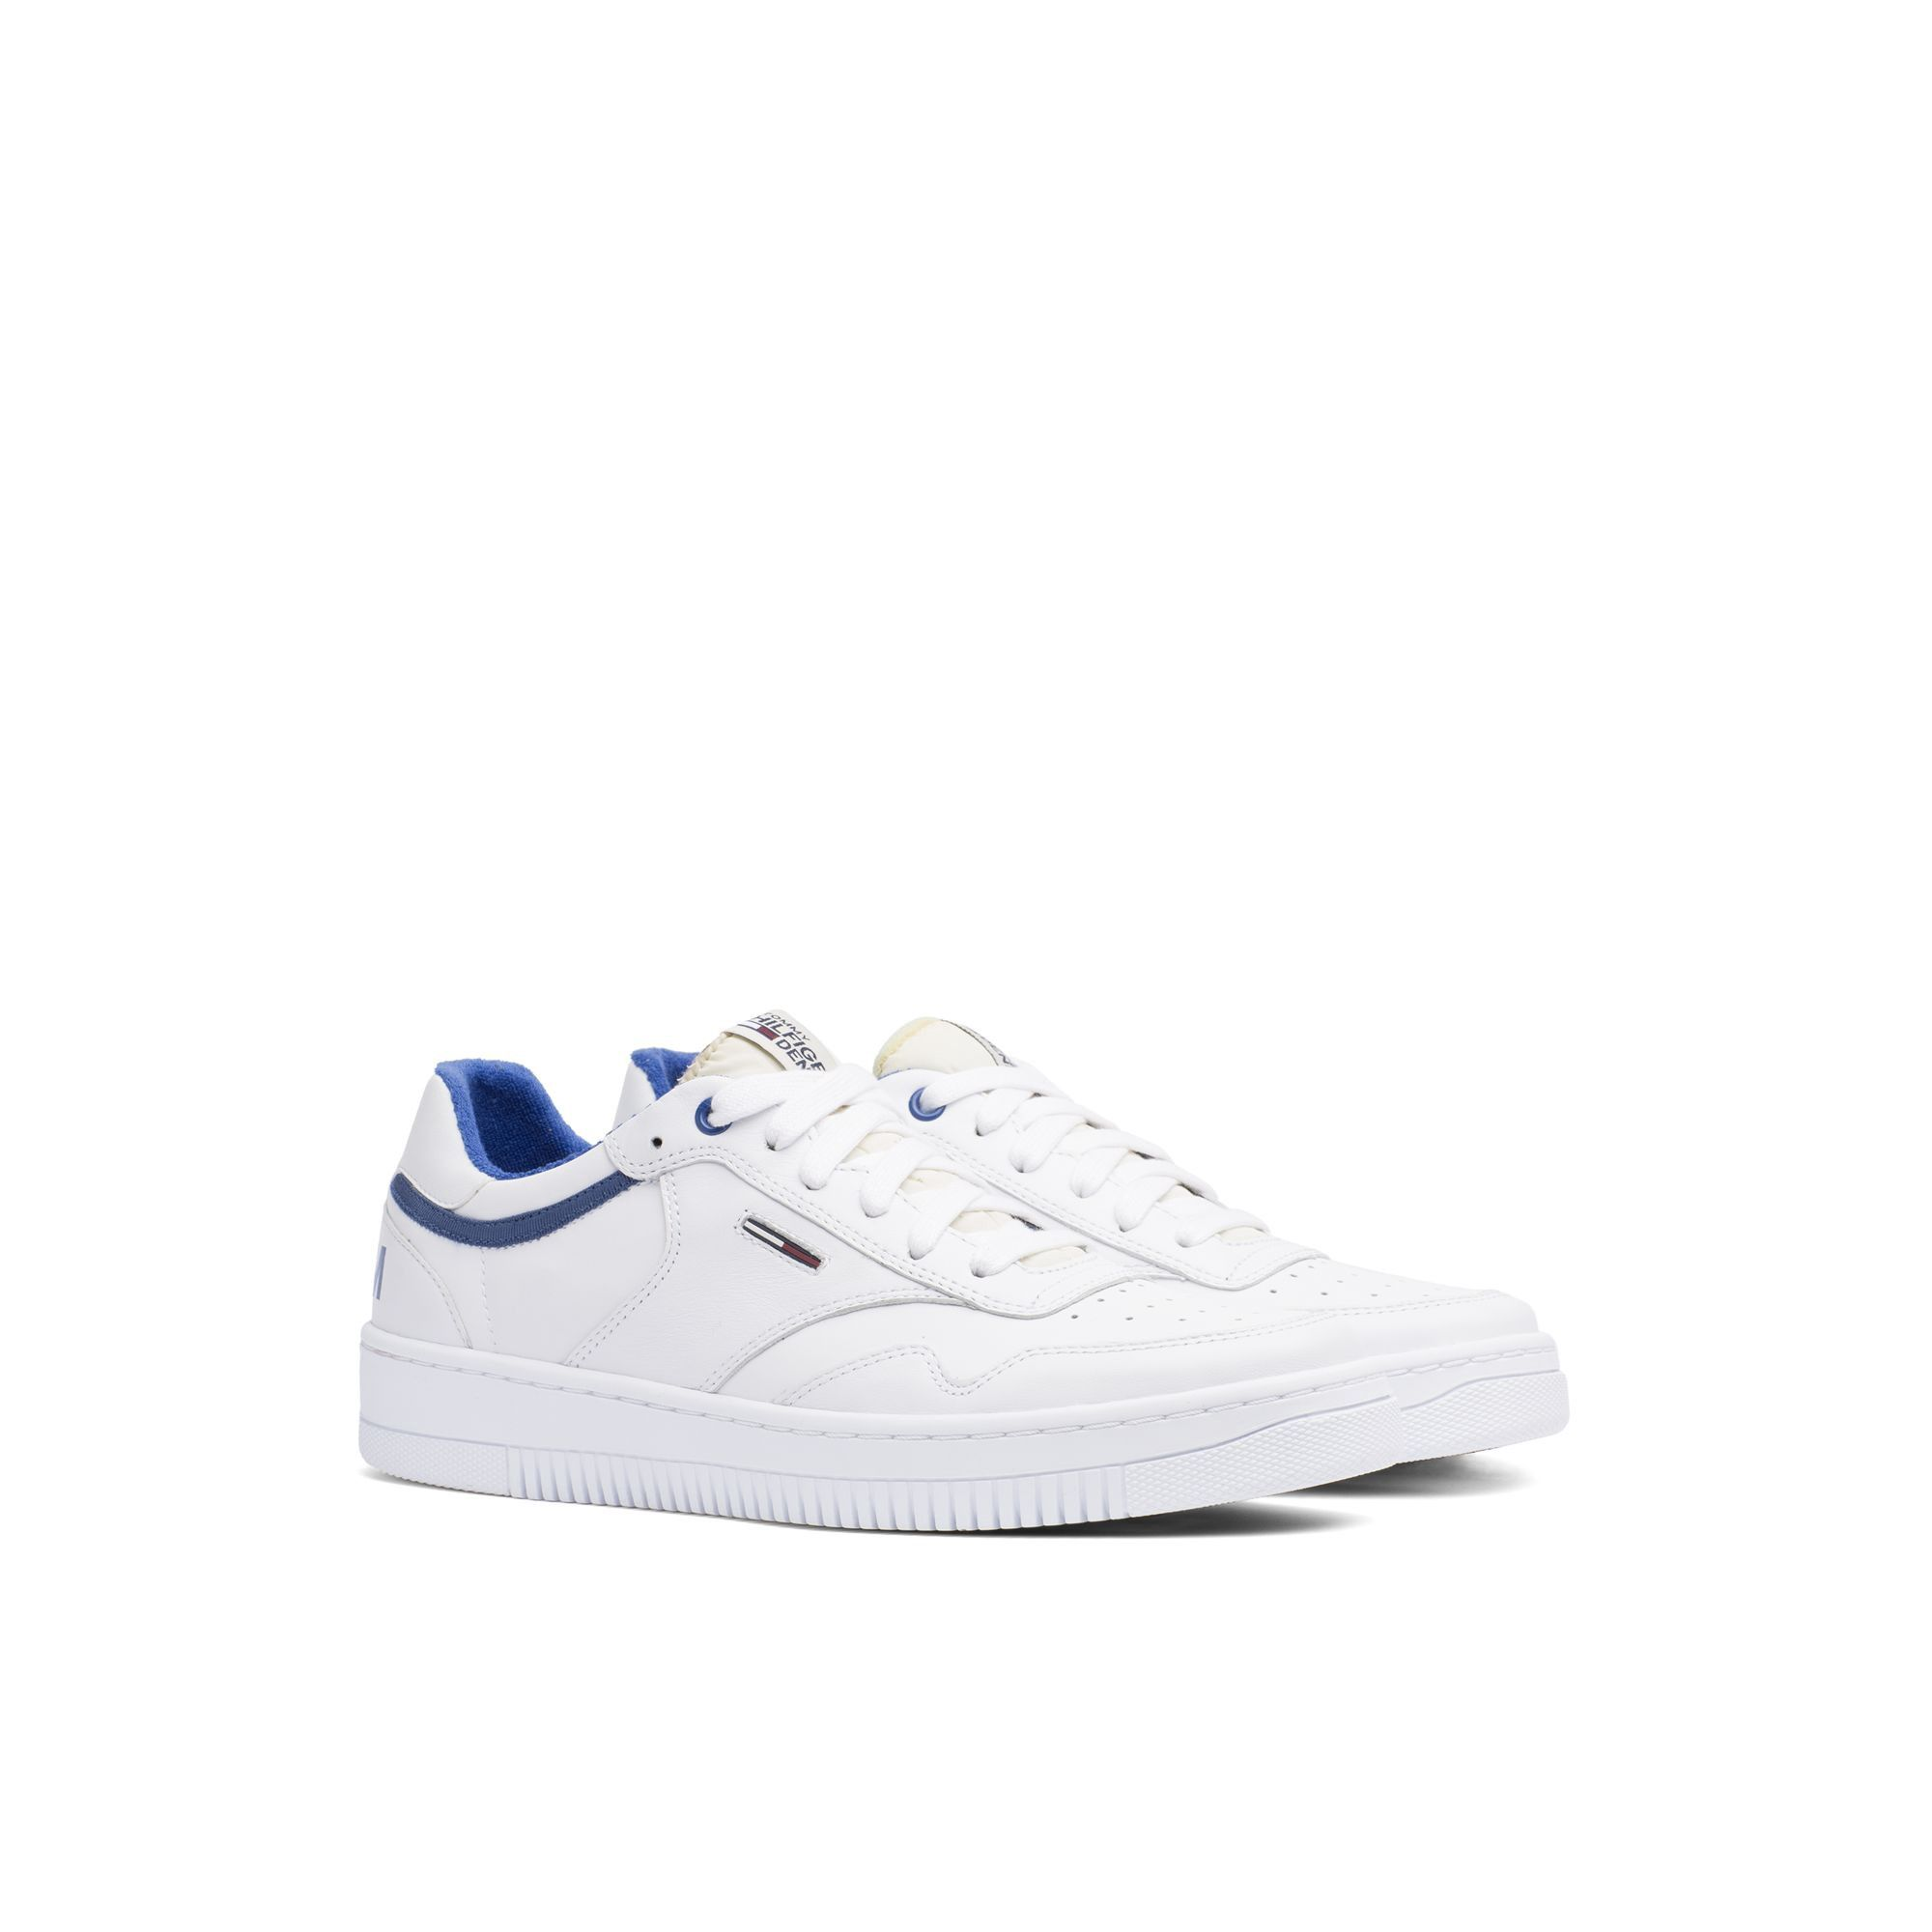 57b2a555d7f7 TOMMY HILFIGER LEATHER SNEAKER - WHITE-MONACO BLUE.  tommyhilfiger  shoes